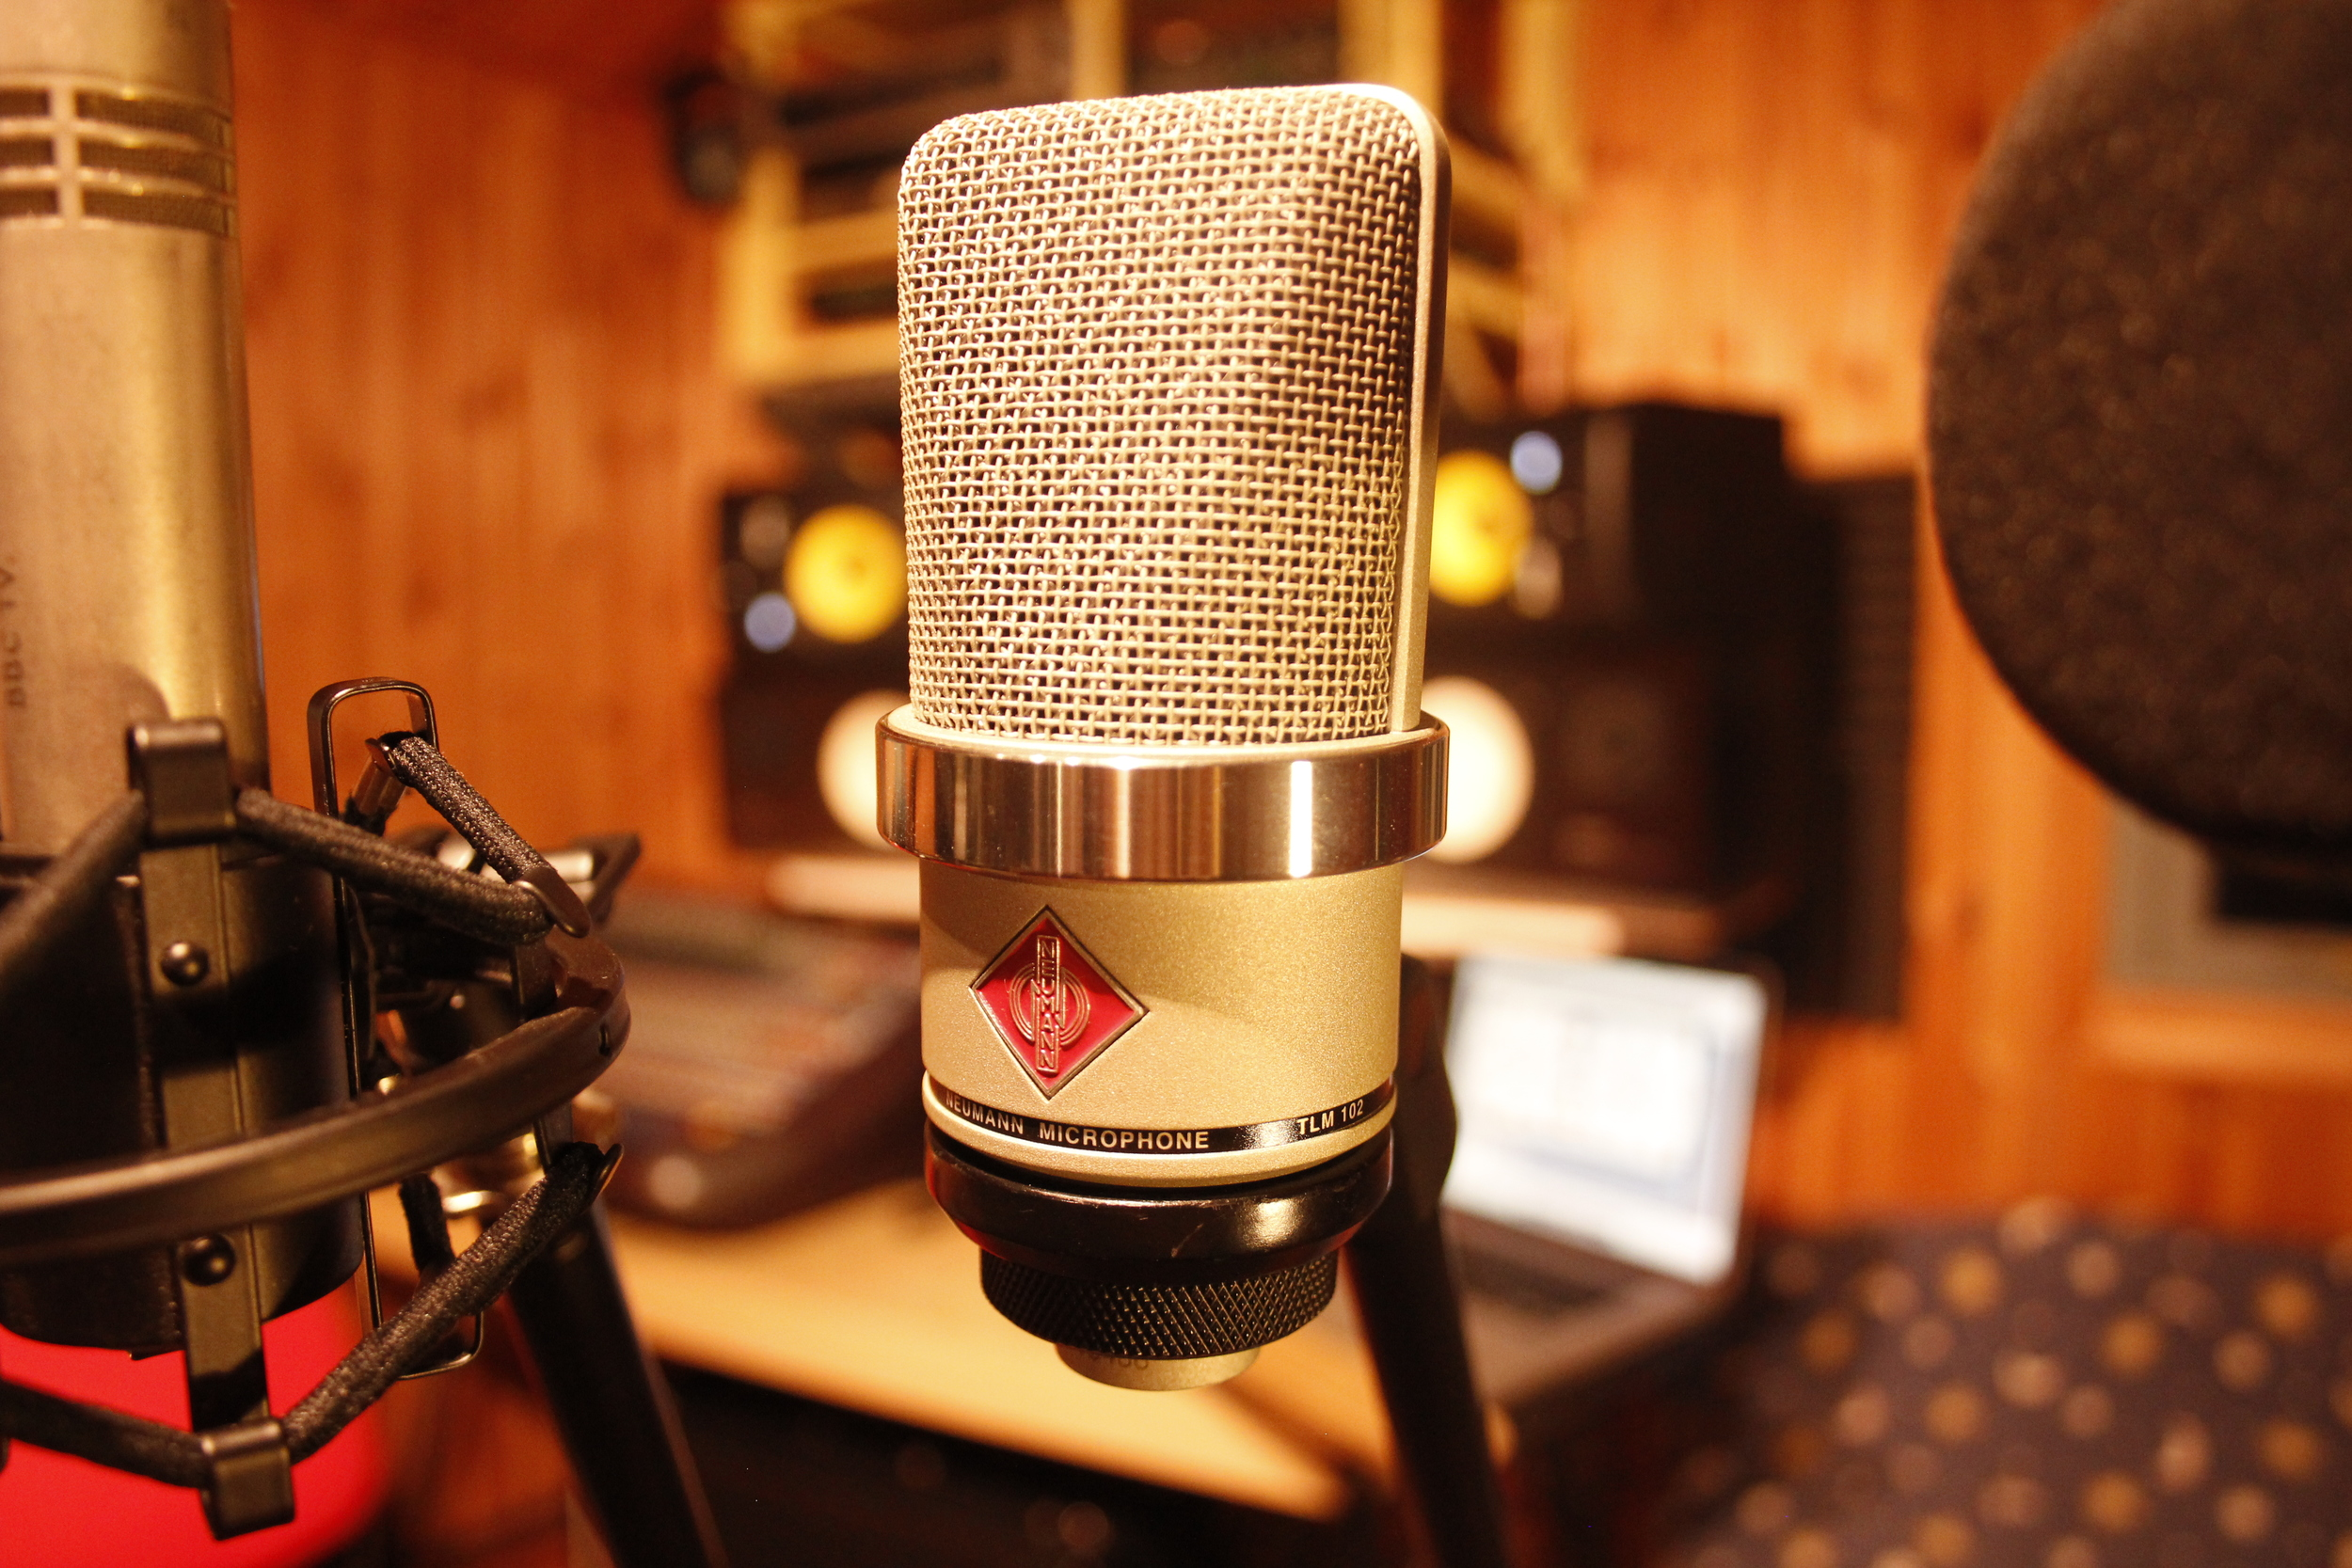 Neumann tlm102. My prefered voice over mic. So quiet.